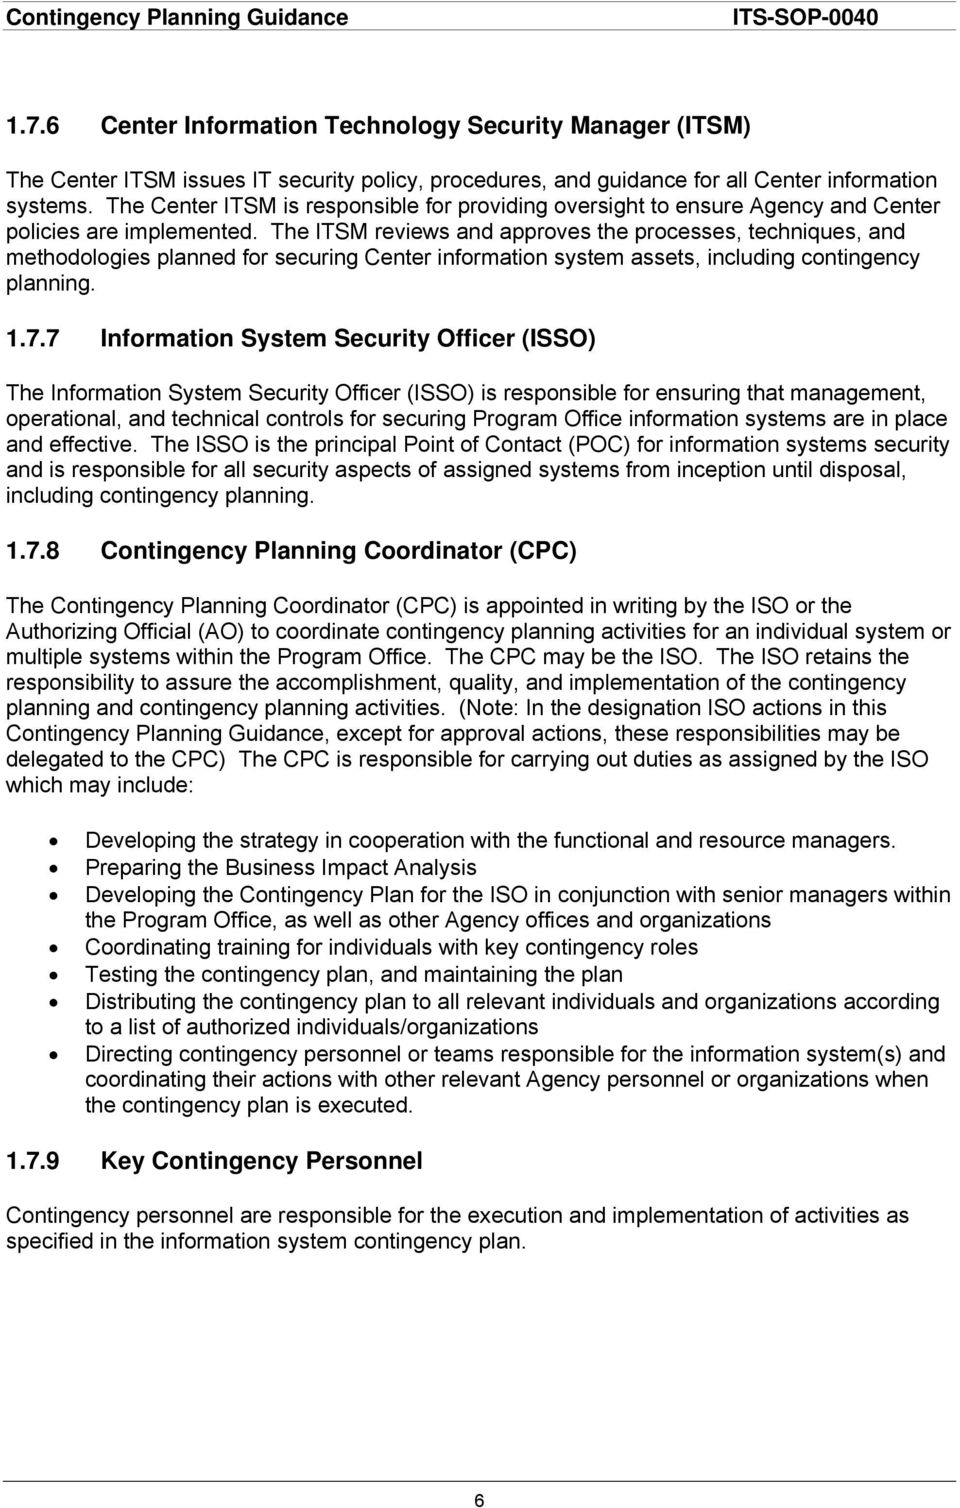 The ITSM reviews and approves the processes, techniques, and methodologies planned for securing Center information system assets, including contingency planning. 1.7.